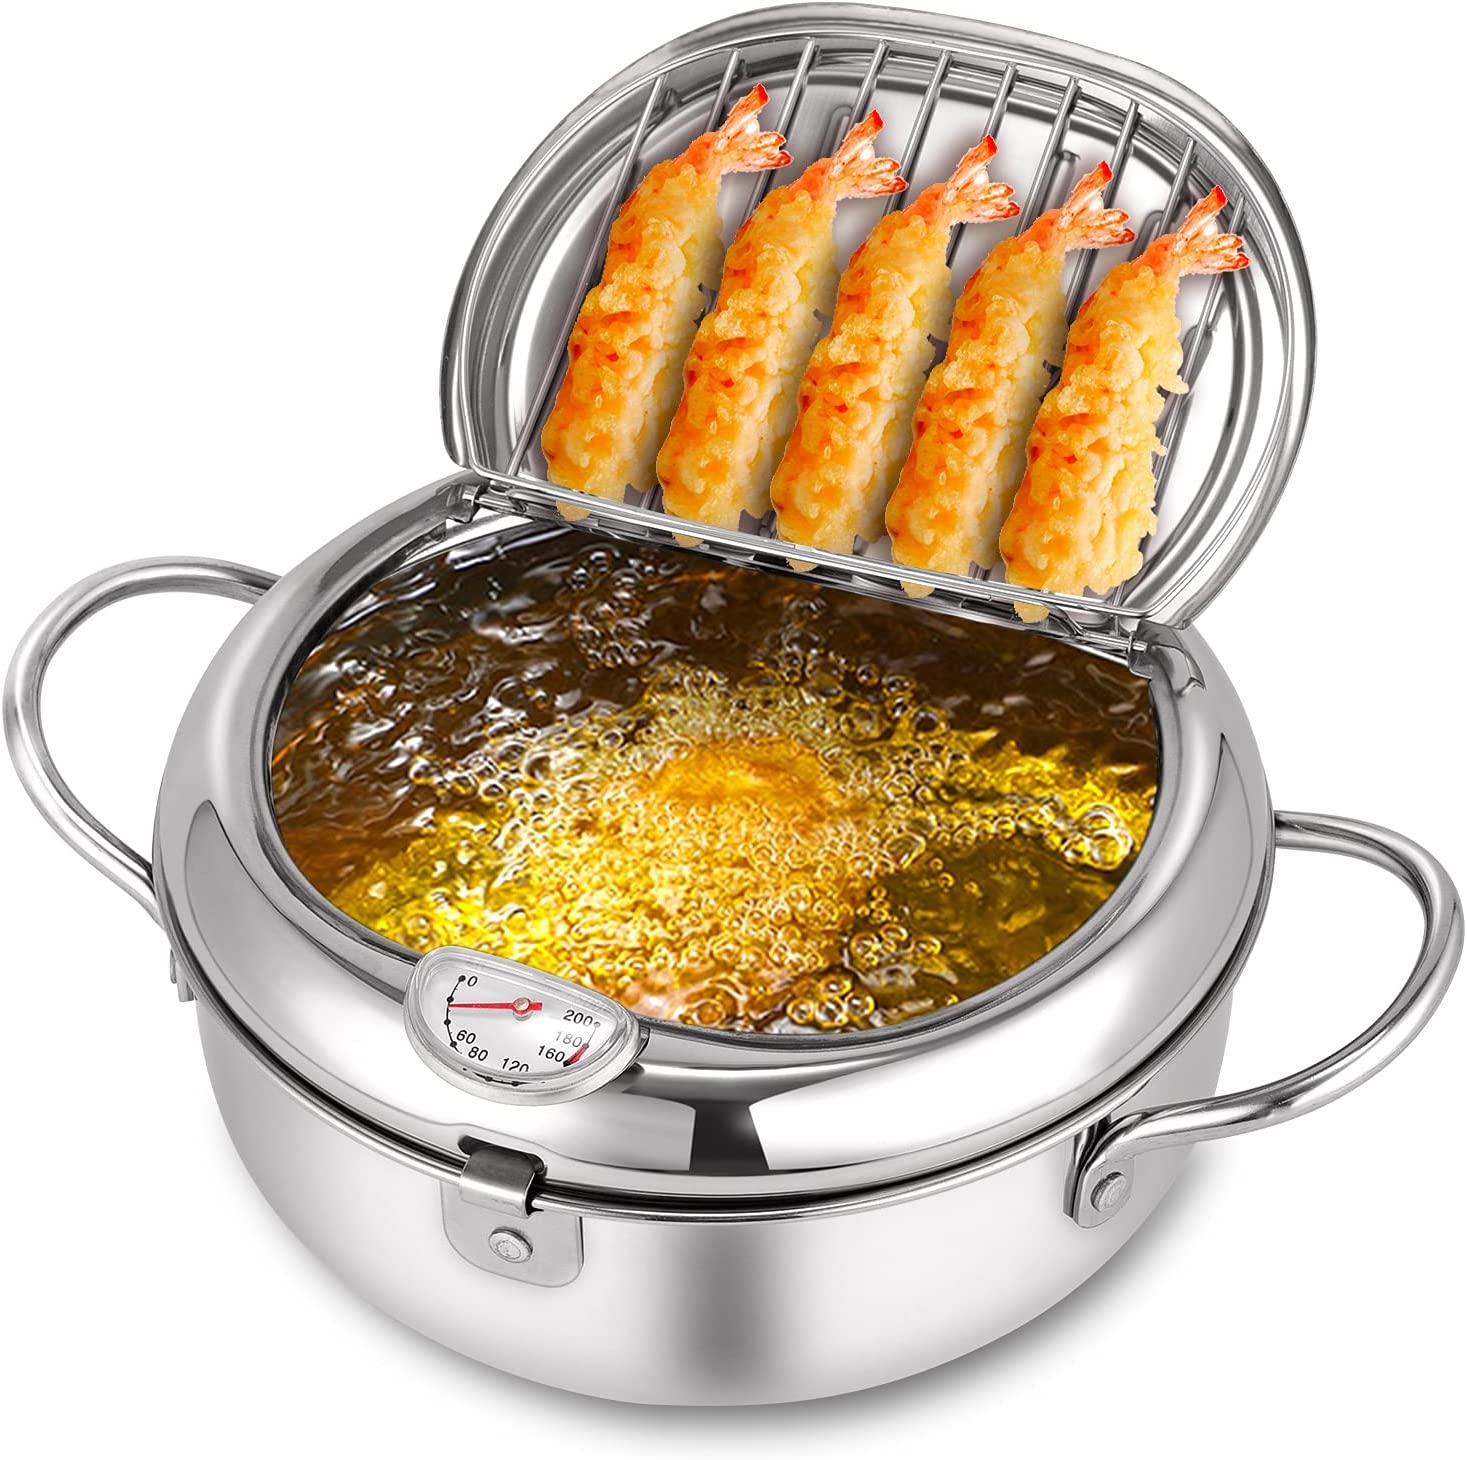 Deep Fryer Pot,304 Stainless Steel with Temperature Control and Lid Japanese Style Tempura Fryer Pan Uncoated Fryer Diameter:8.0